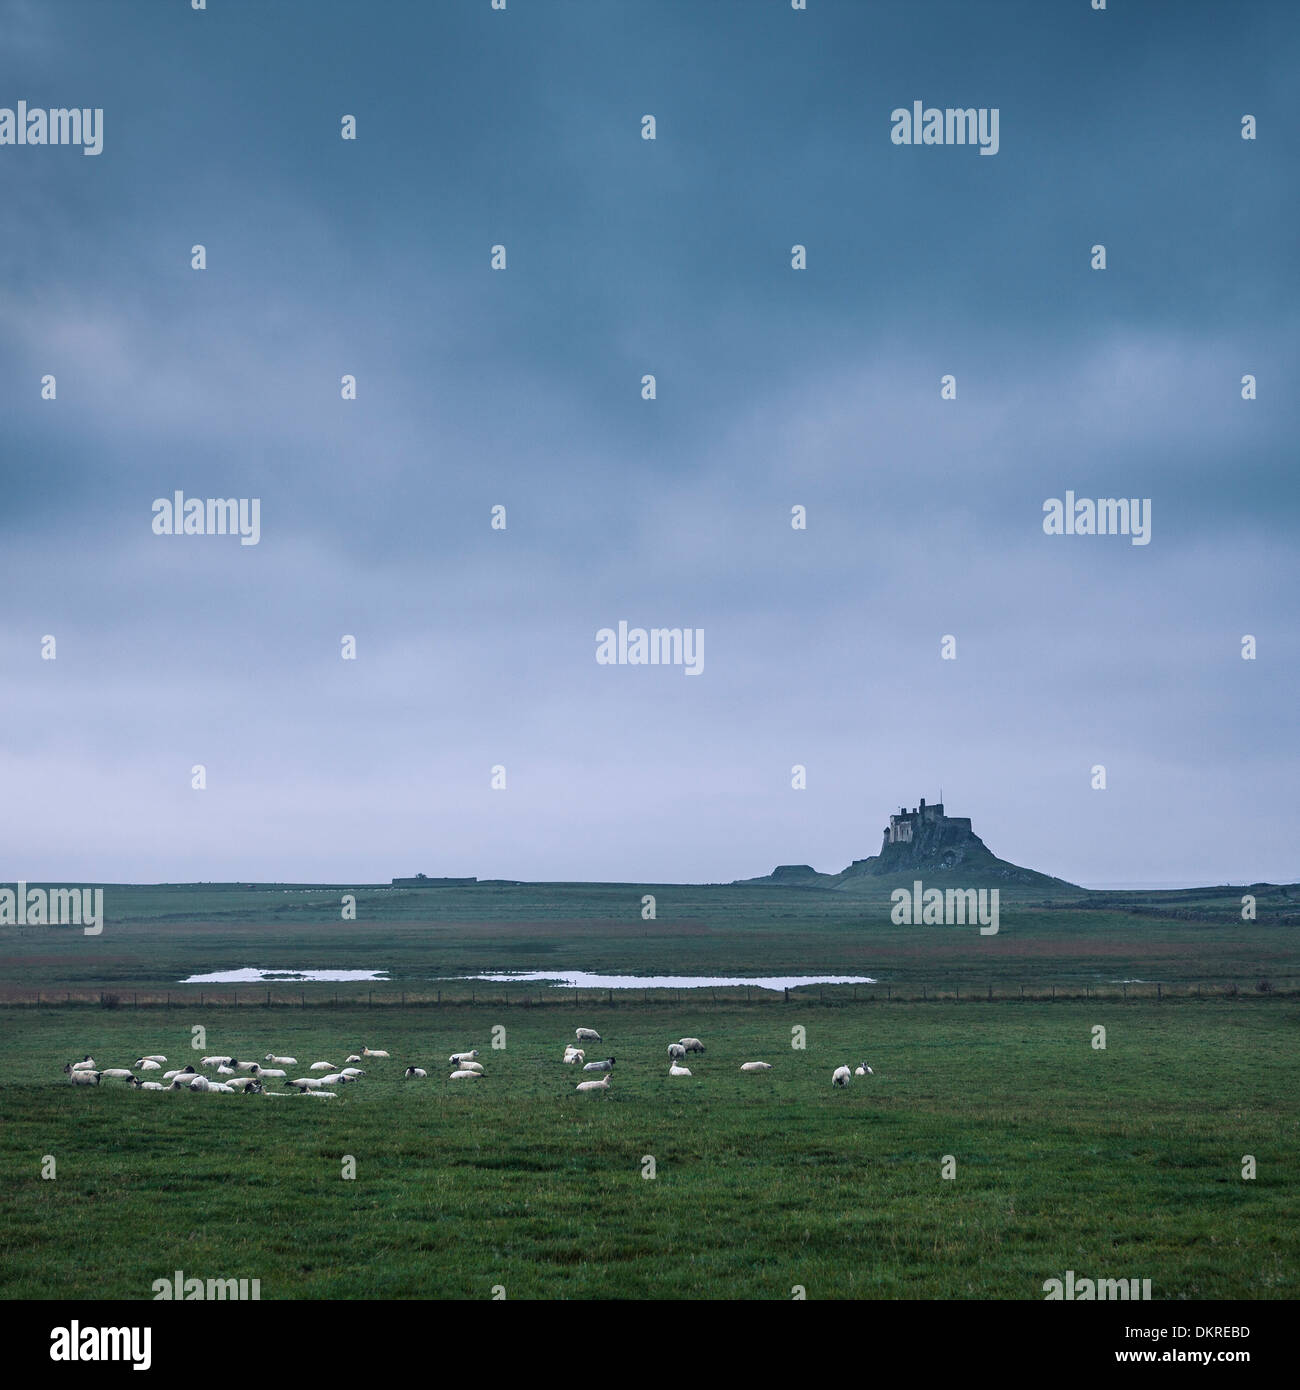 Lindisfarne Castle, Holy Island of Lindisfarne, Berwick-upon-Tweed, Northumberland, England, United Kingdom - Stock Image